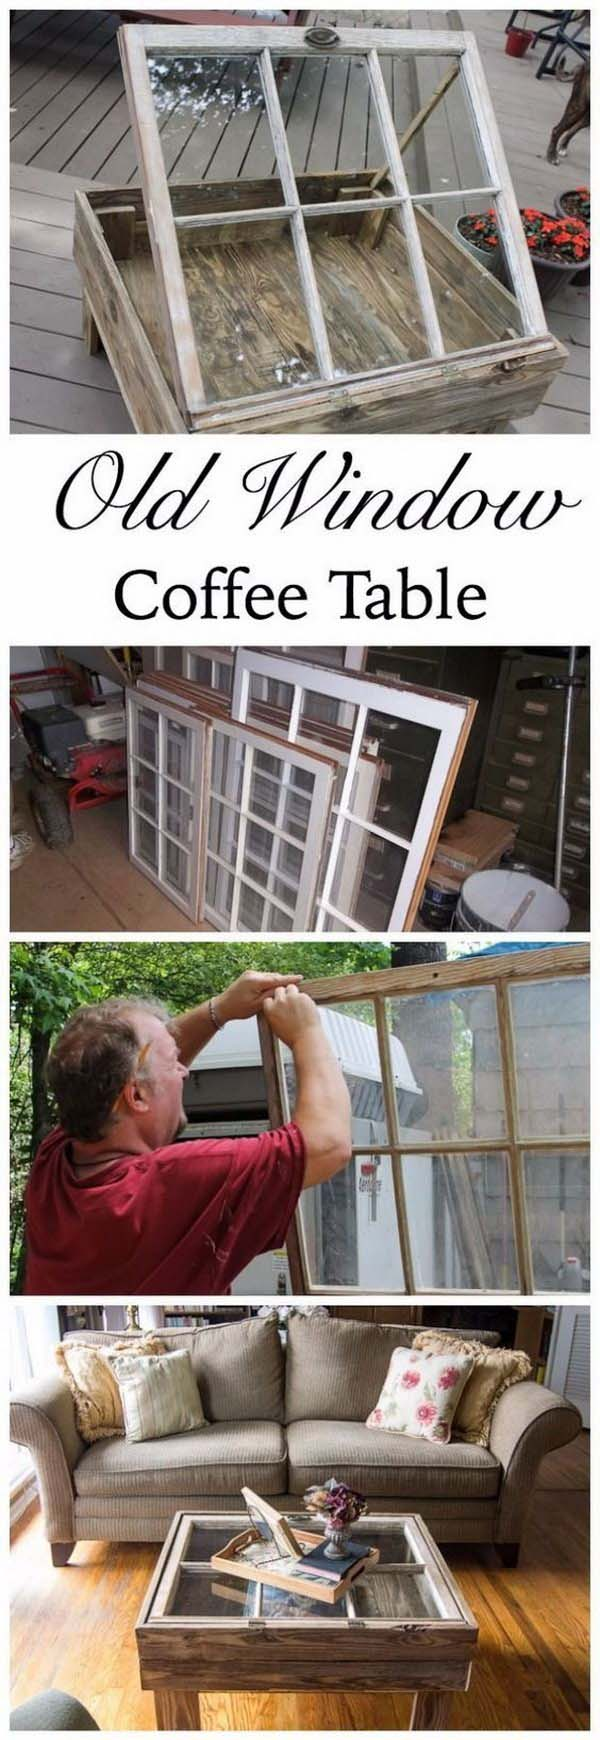 How to make coffee table from old window #diy #furniture #makeover #repurpose #decorhomeideas